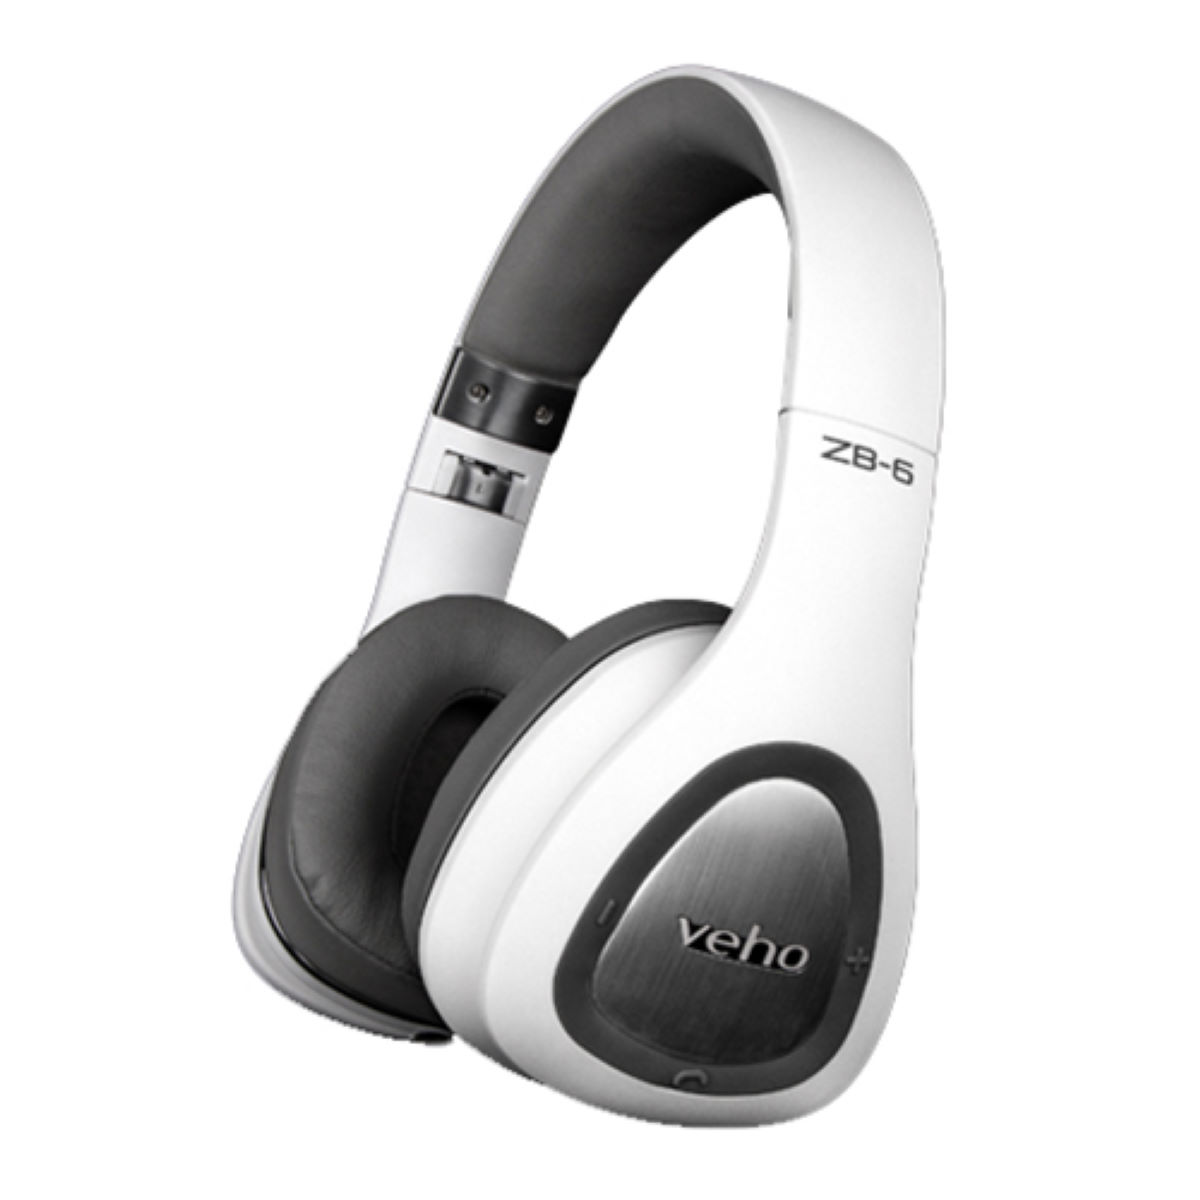 Veho ZB-6 On-Ear Wireless Bluetooth Headphones with Rem - Auriculares